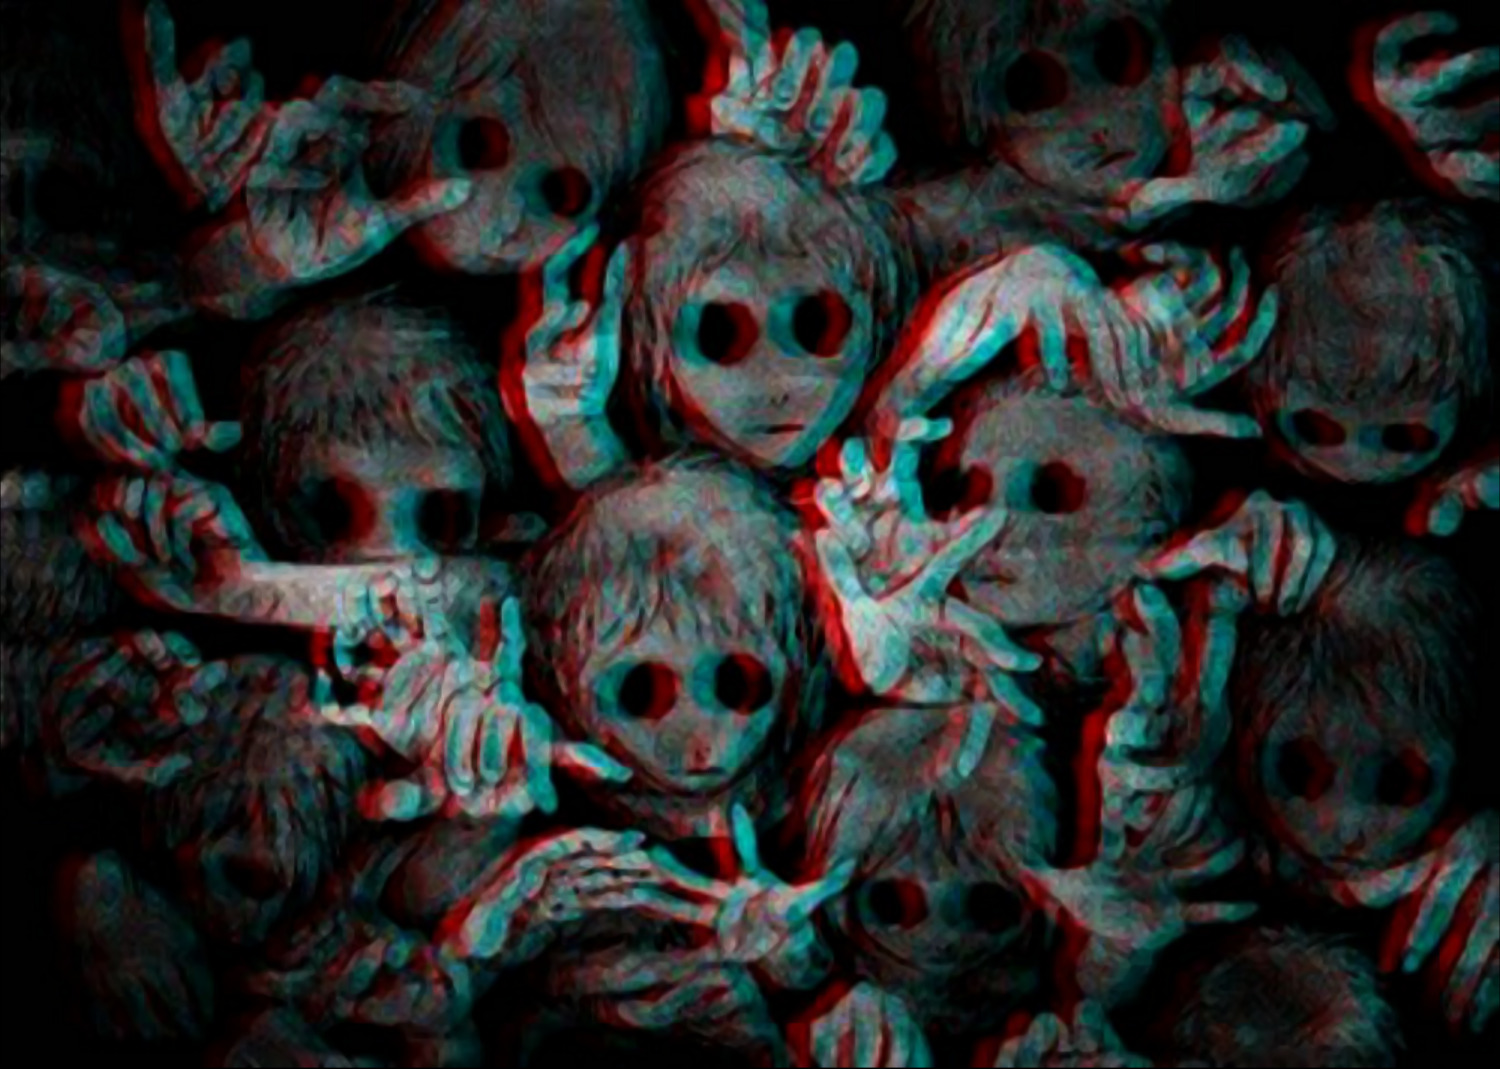 Creepy Wallpaper and Background | 1500x1069 | ID:402922